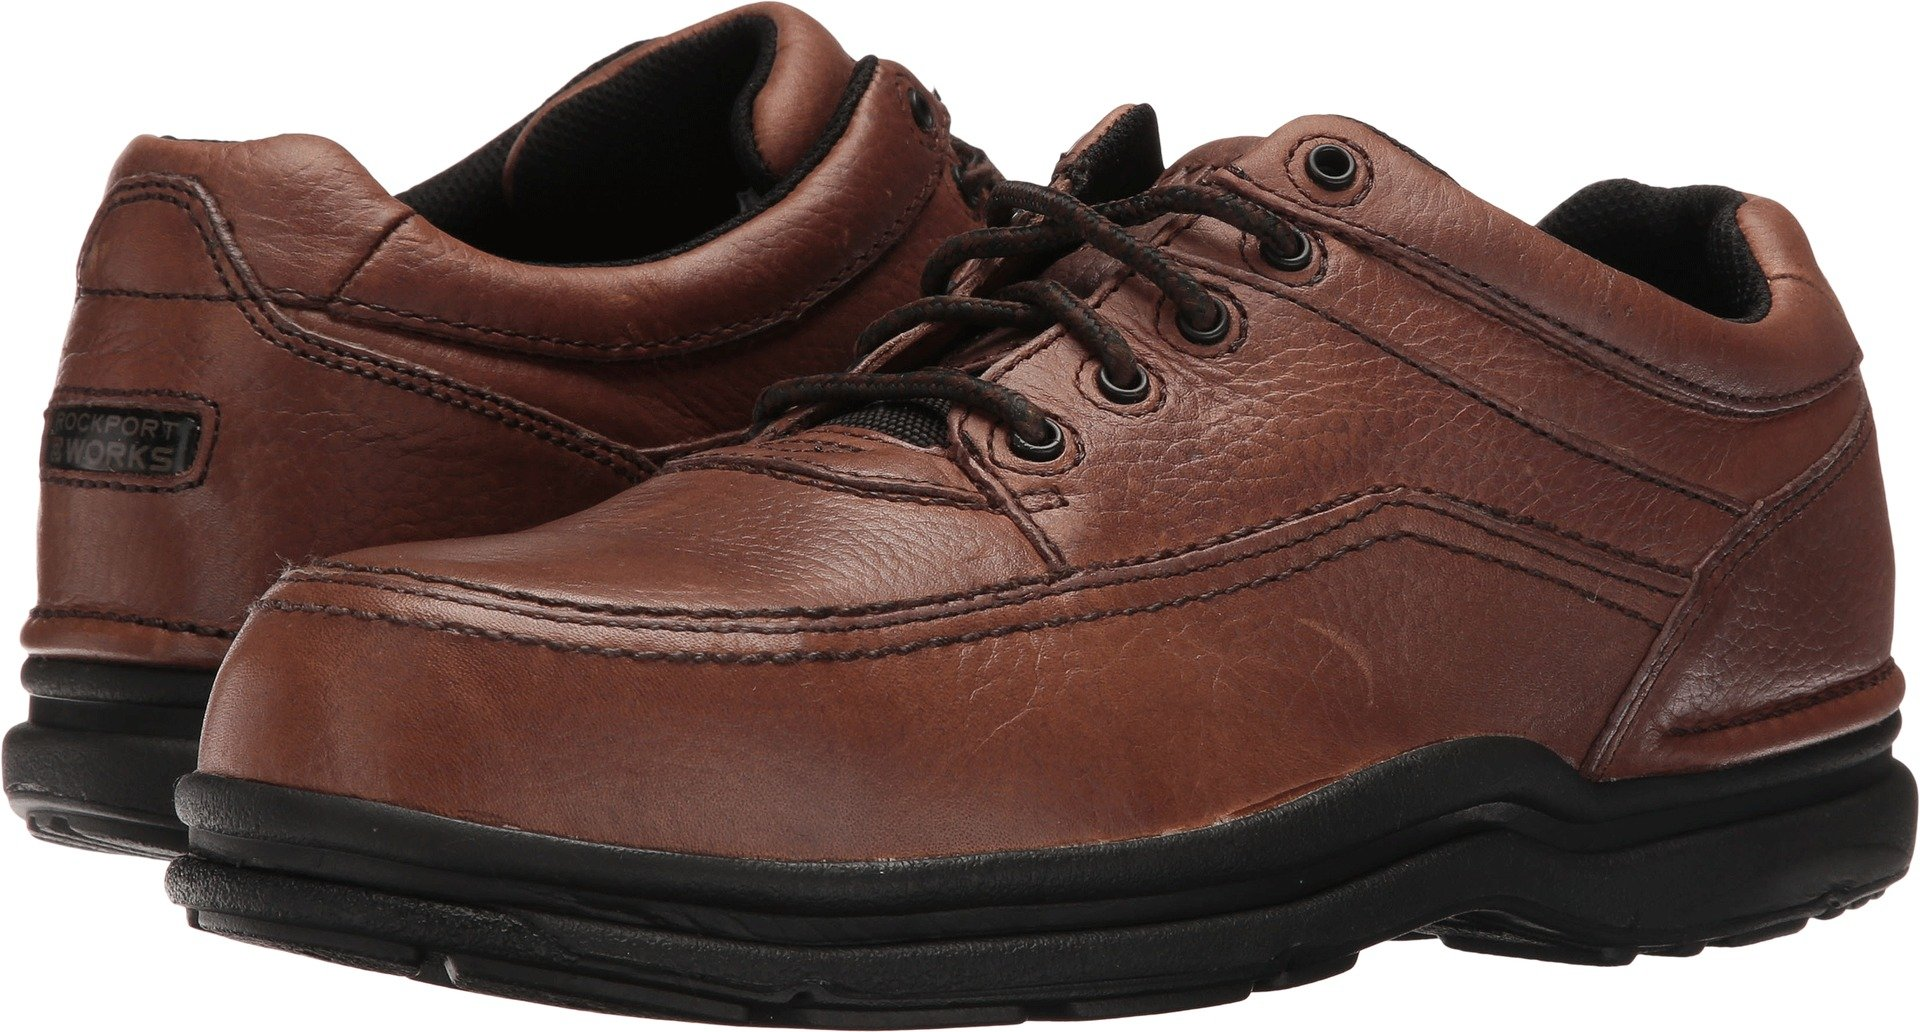 Rockport Shoes: Men's Steel Toe ESD Work Shoes RK6762-11.5EW